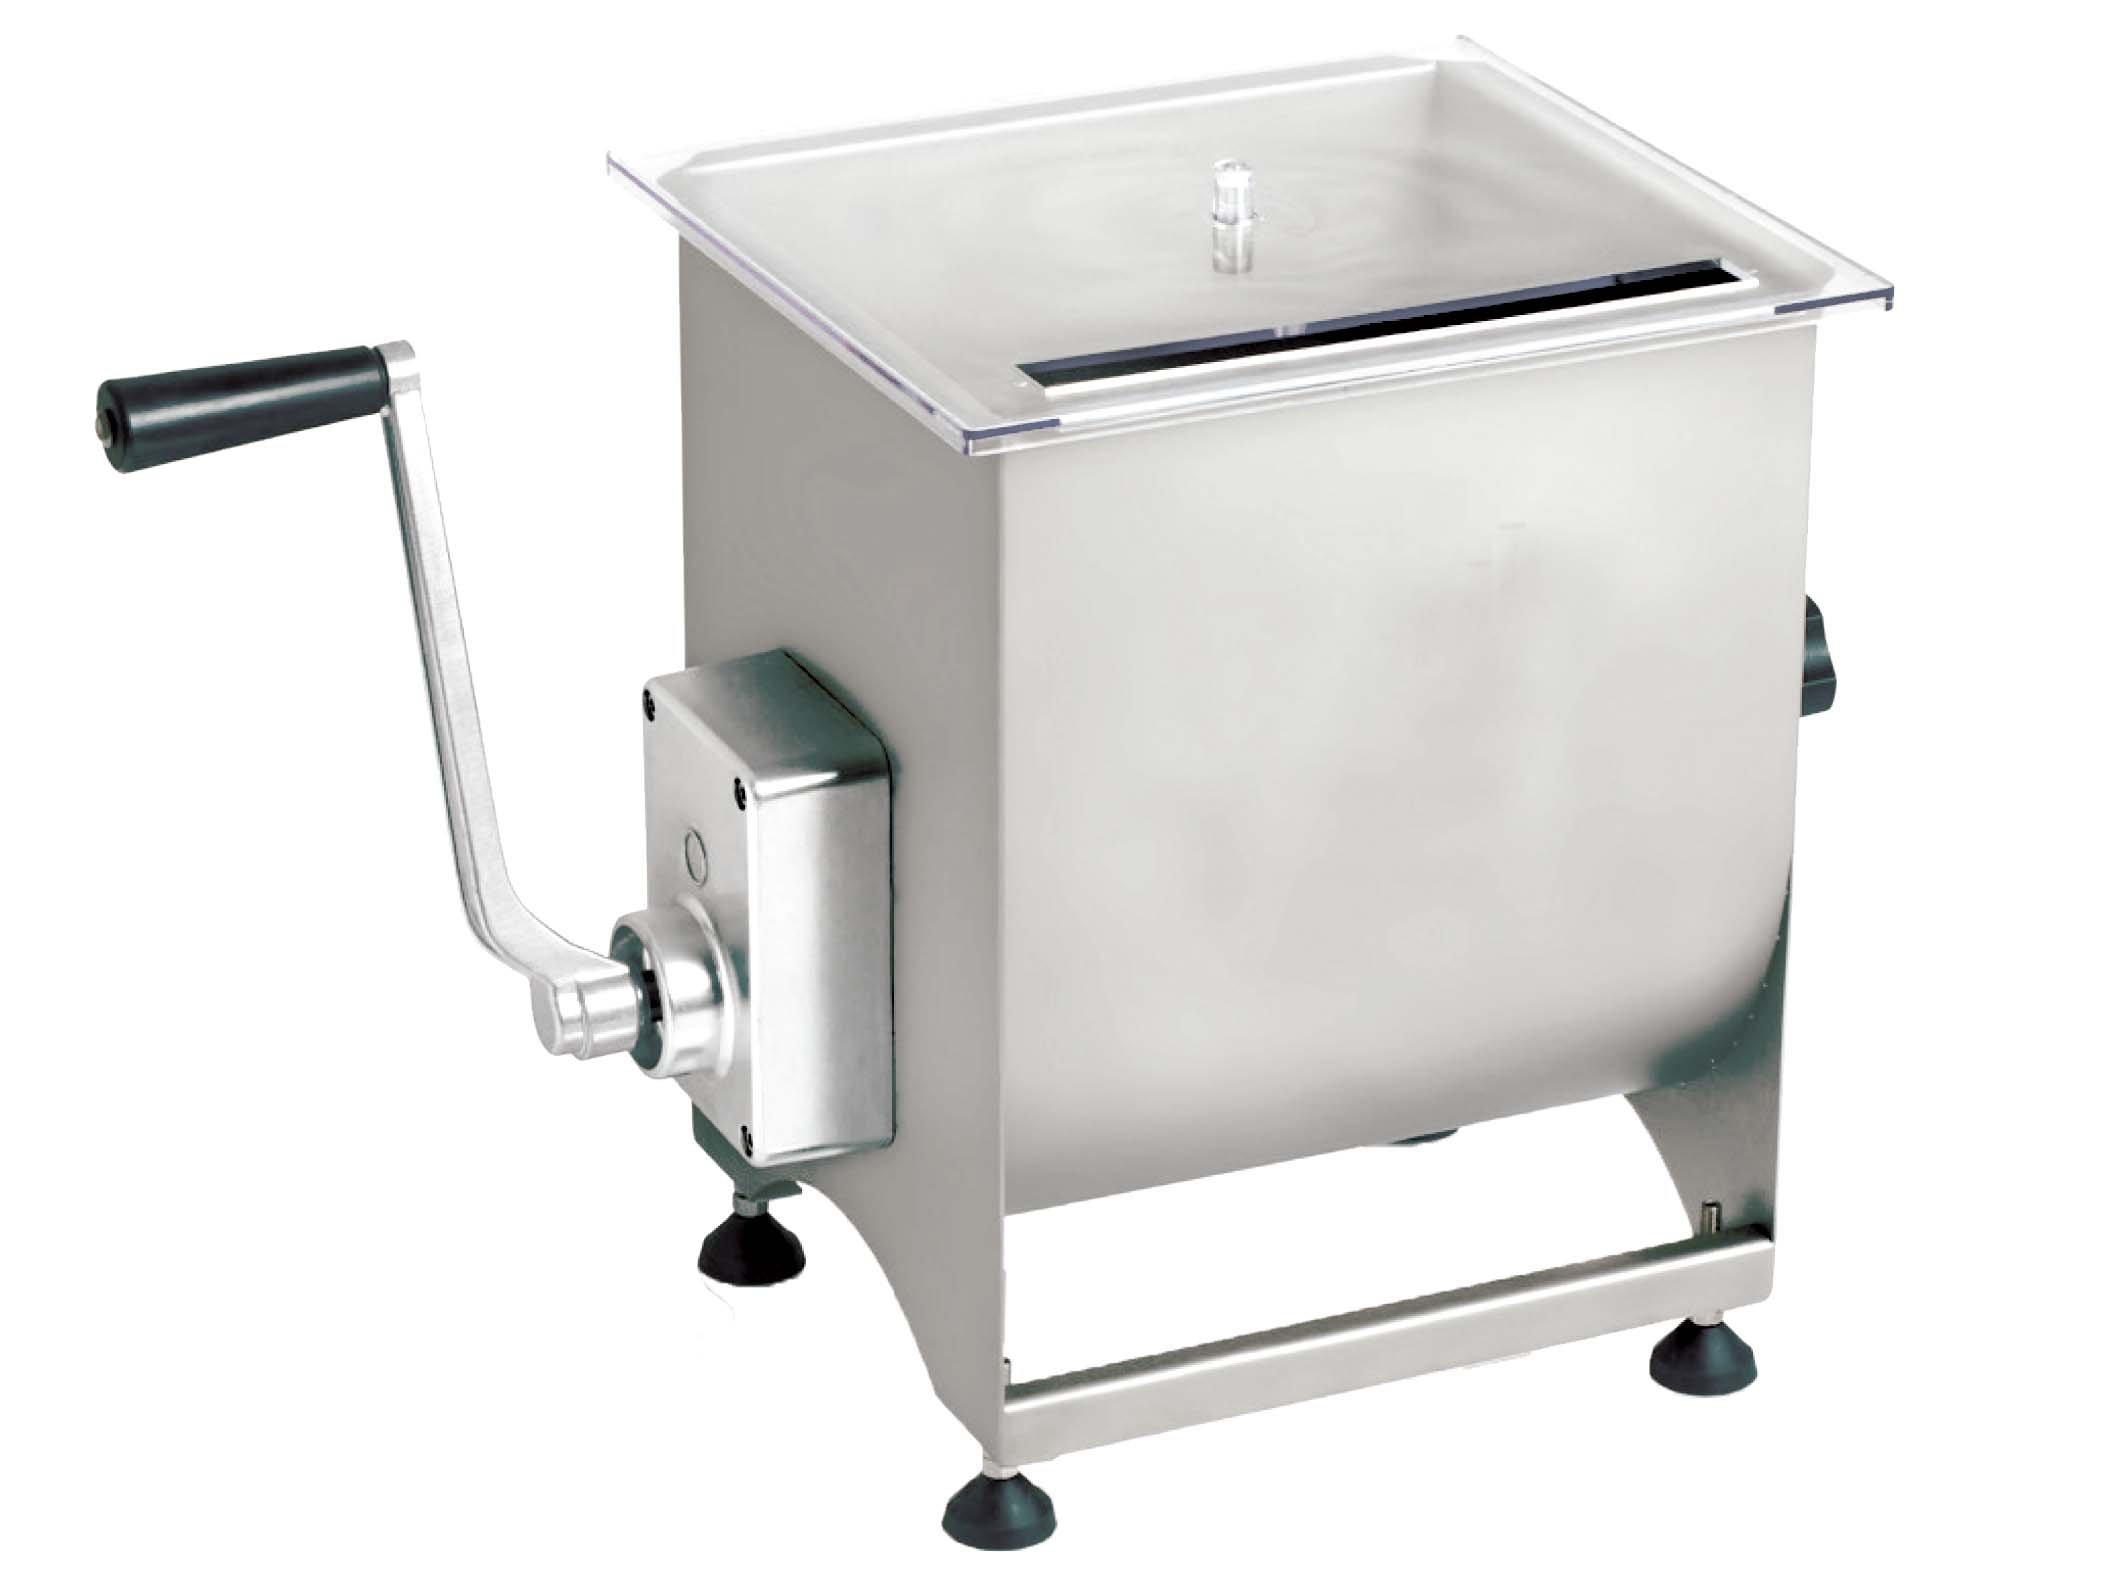 Omcan 13157 Manual Commercial Restaurant Meat Mixer with 44 lb Tank Italian Made